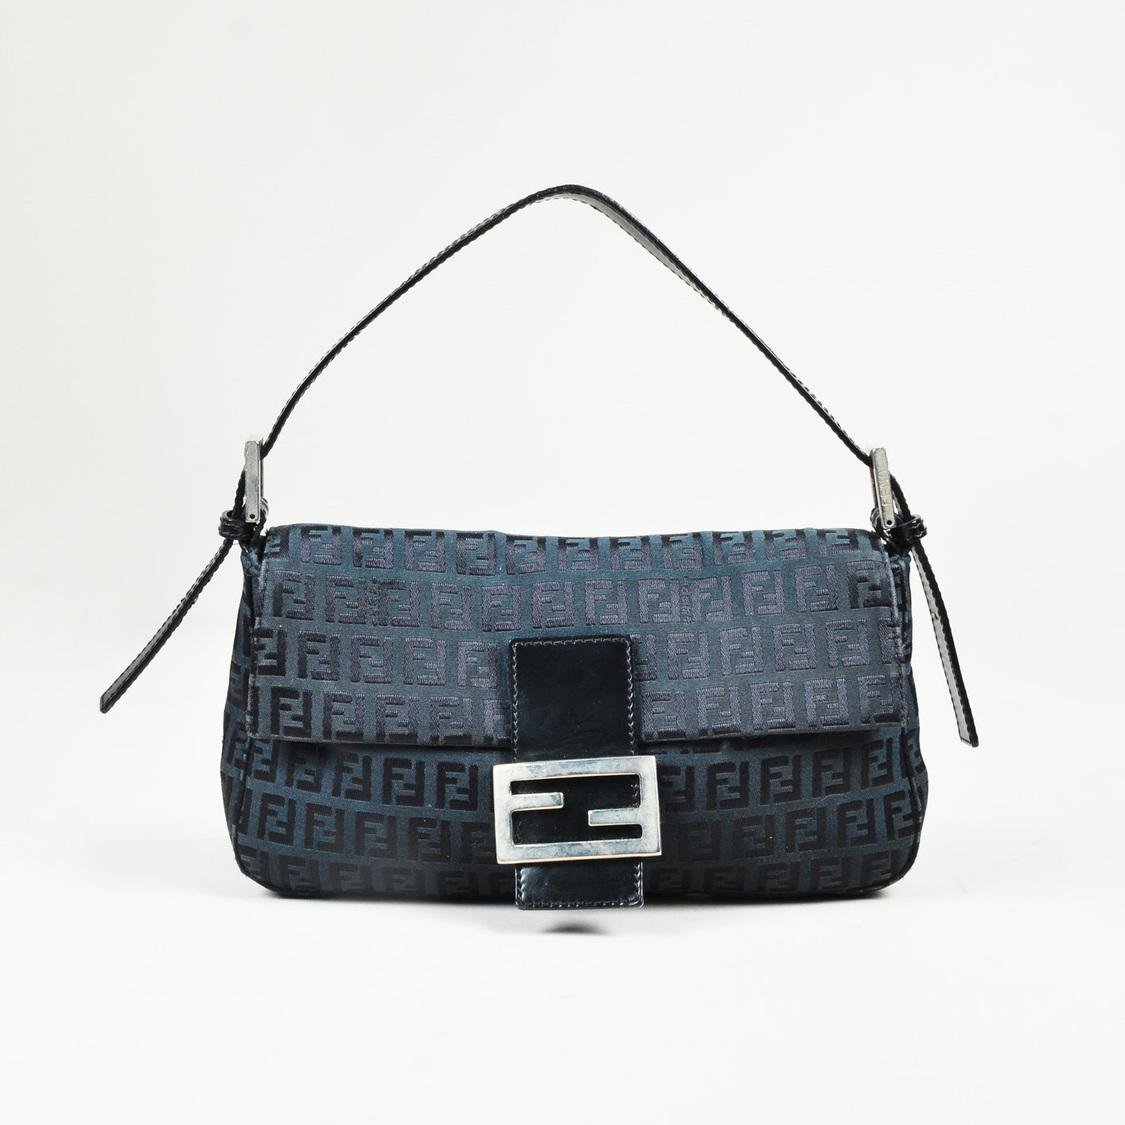 faa89a9bd1 Gallery. Previously sold at  Luxury Garage Sale · Women s Fendi Baguette ...